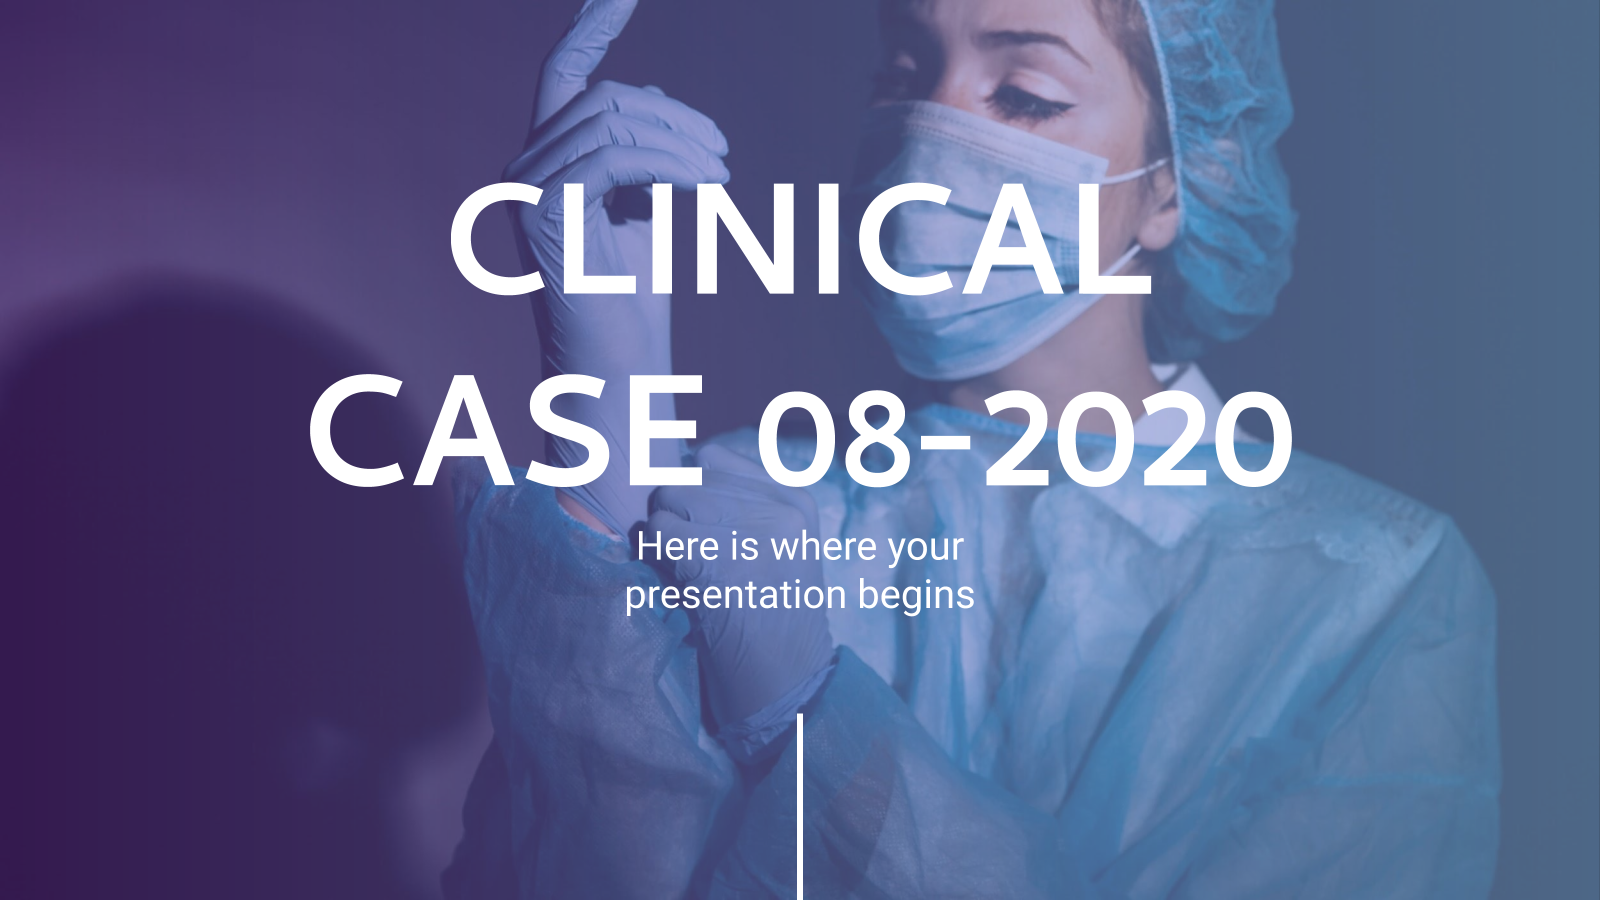 Clinical Case 08-2020 presentation template